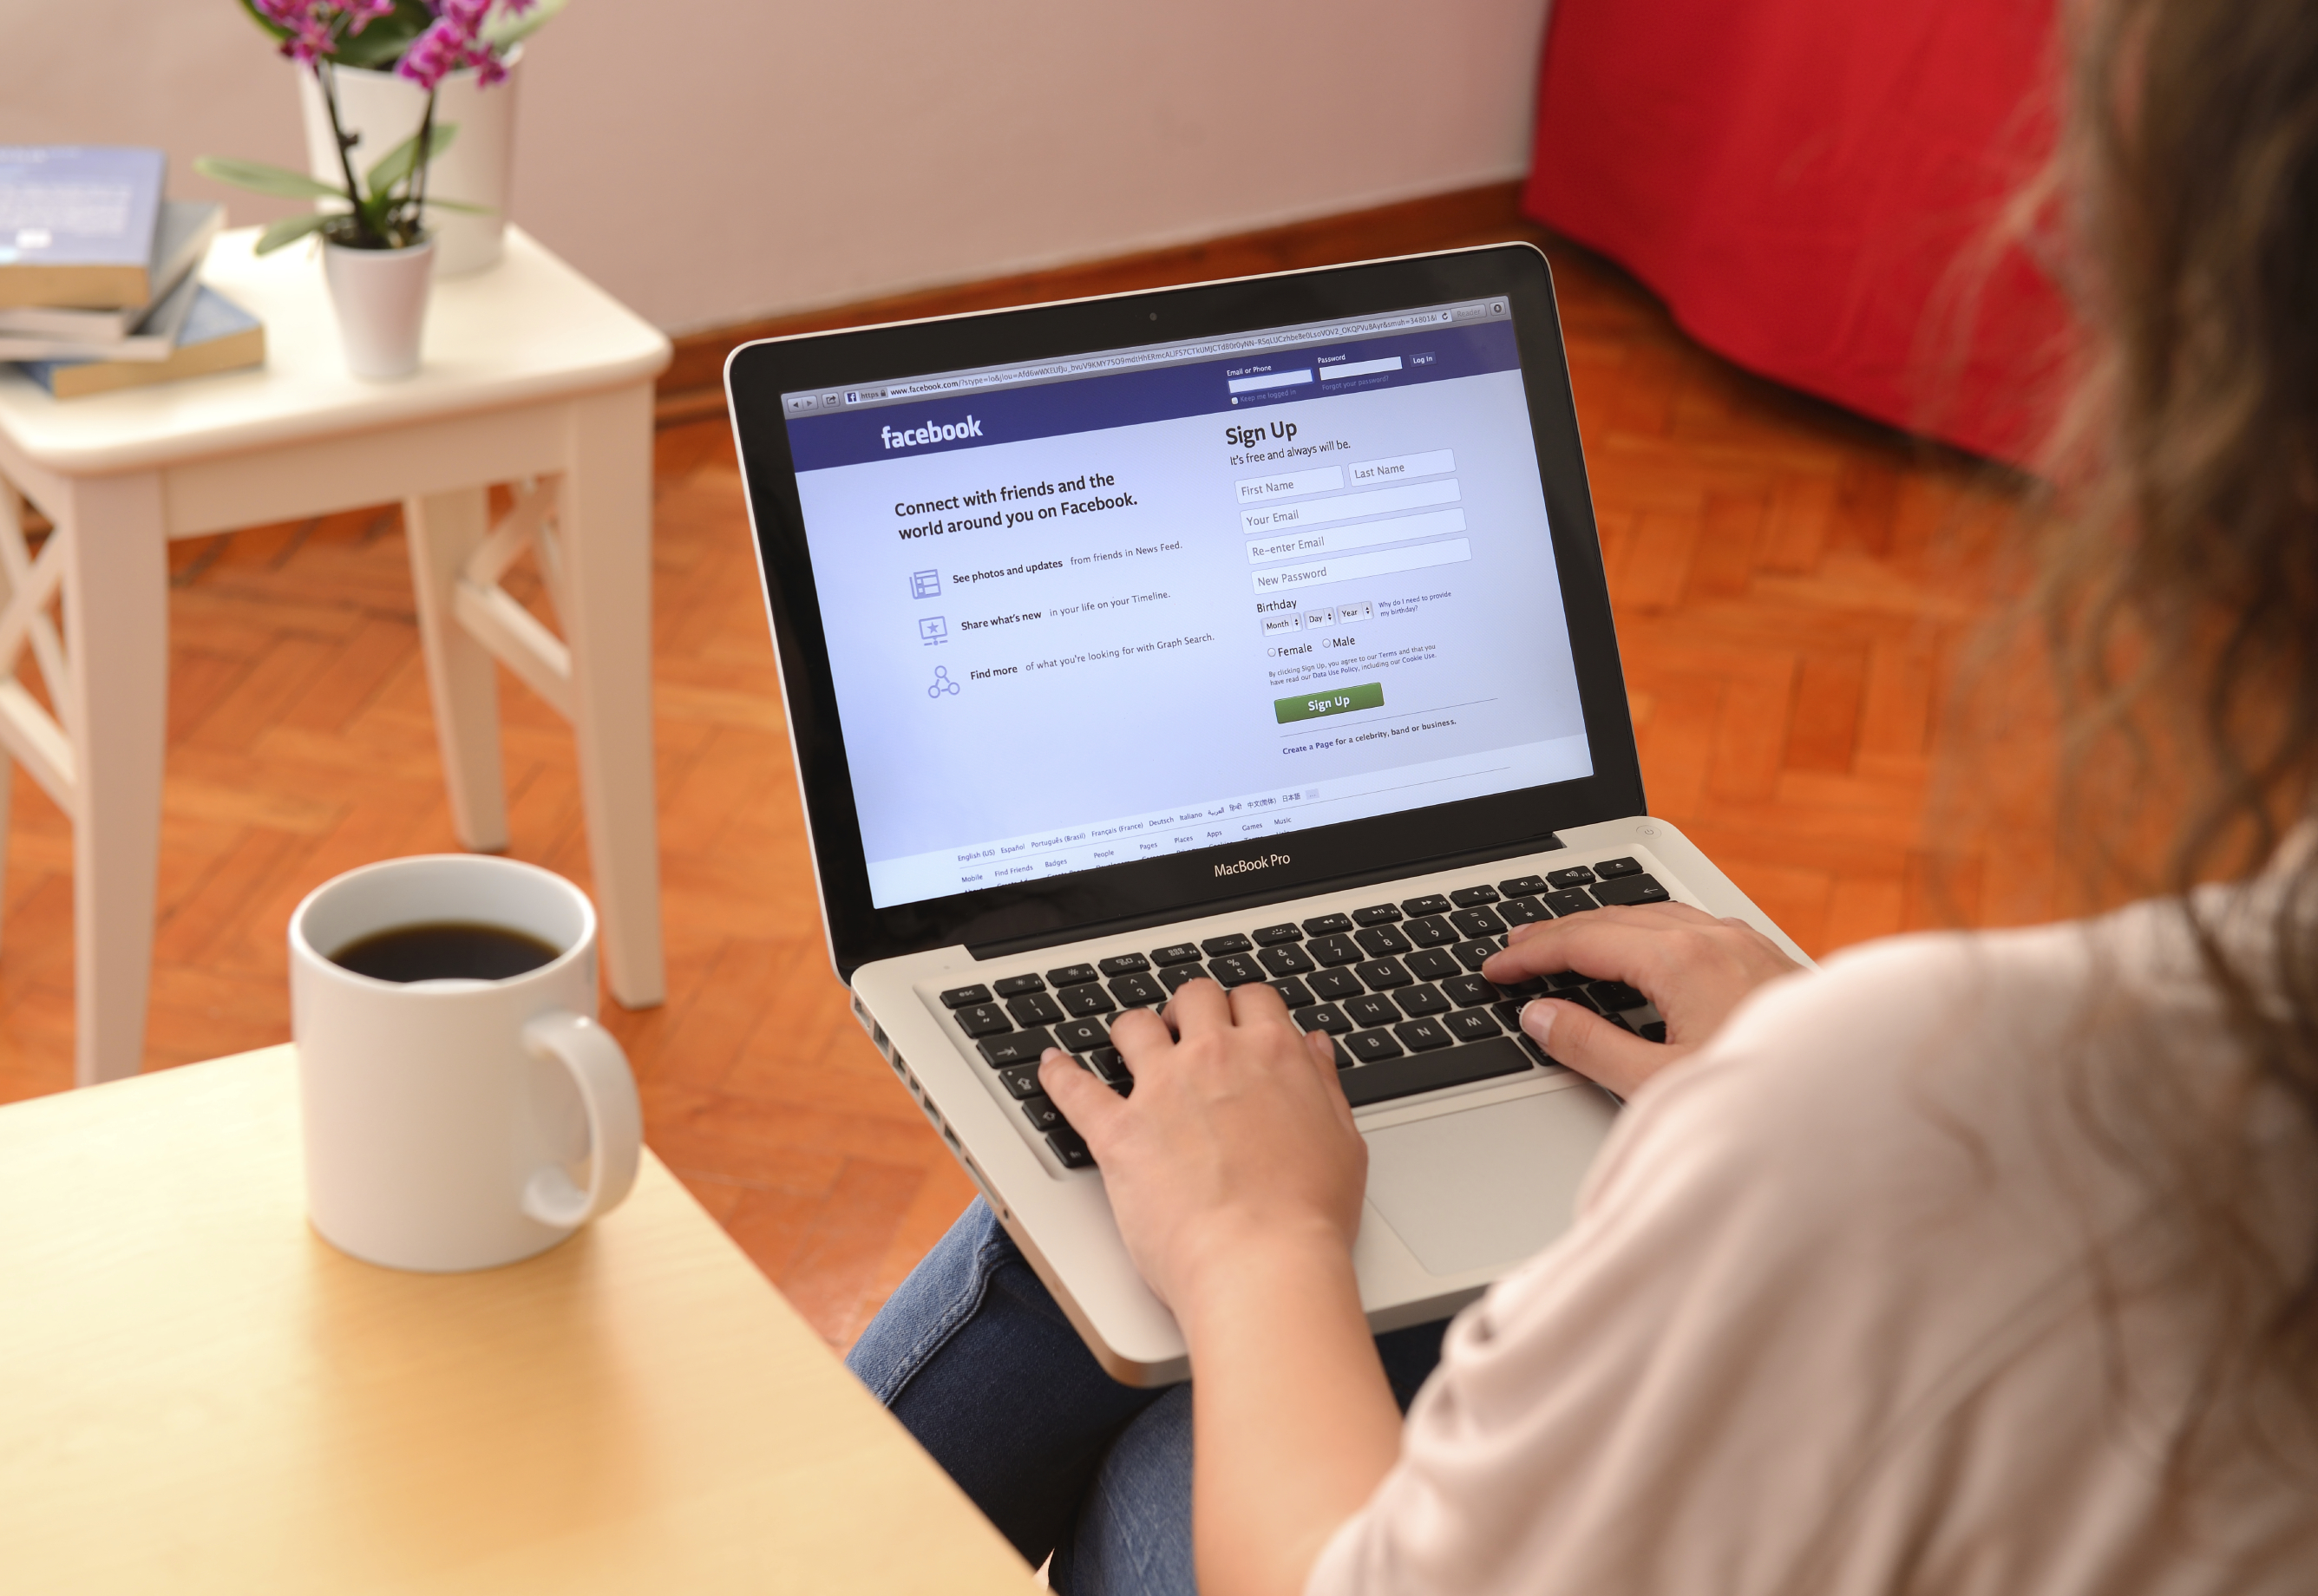 Over shoulder view of woman using Facebook on a laptop computer. (stock image)